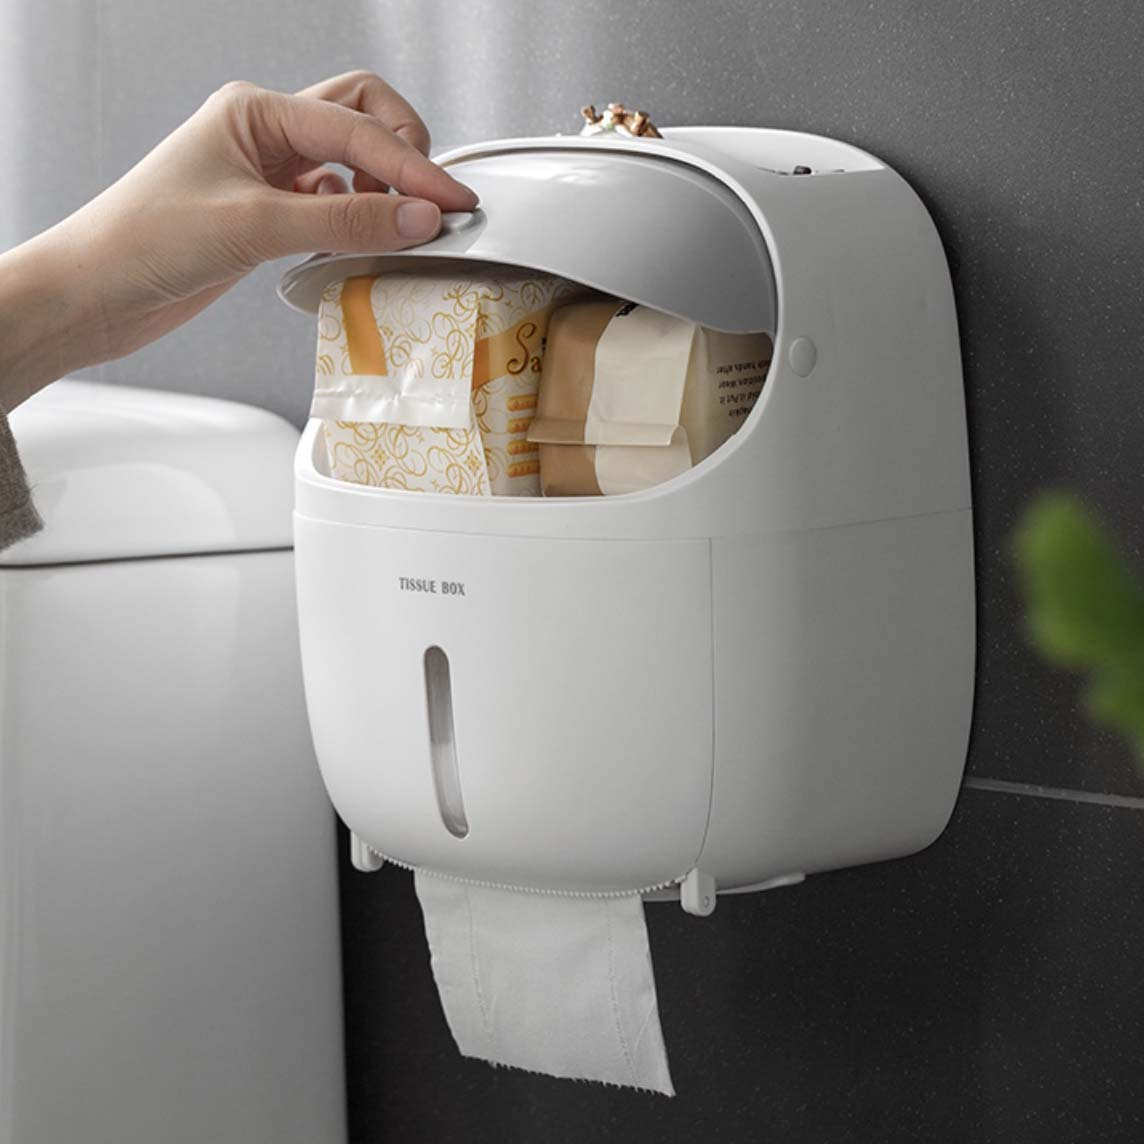 Capsule Toilet Paper Roll Wall Holder With Storage Toilet Style Degree